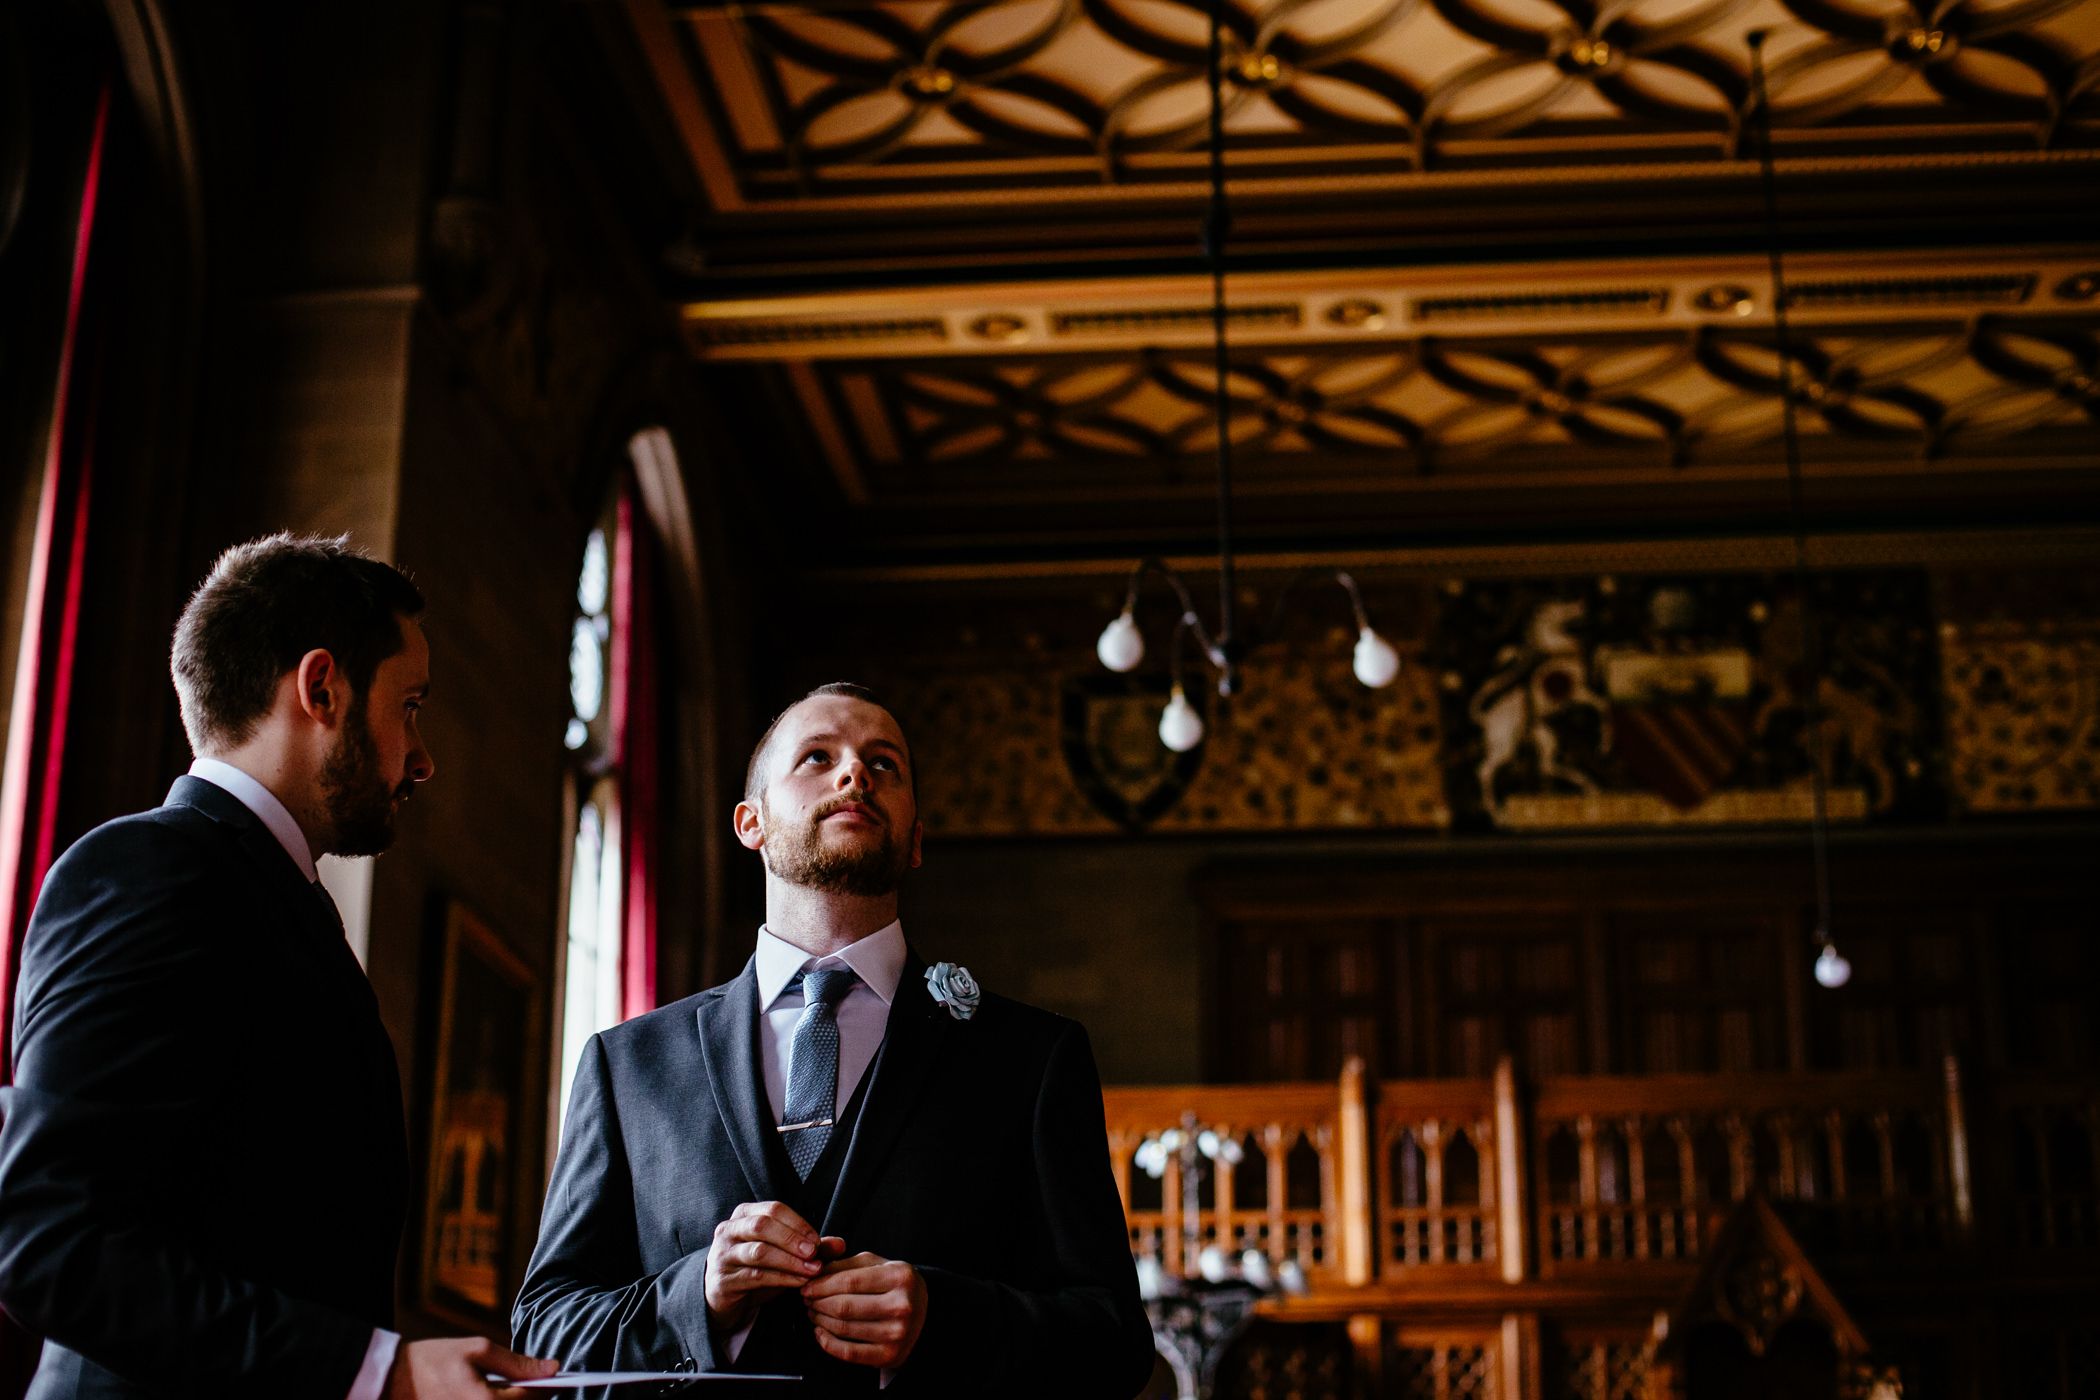 Kelly & Matt - Sansom Photography Manchester Wedding Photography-9